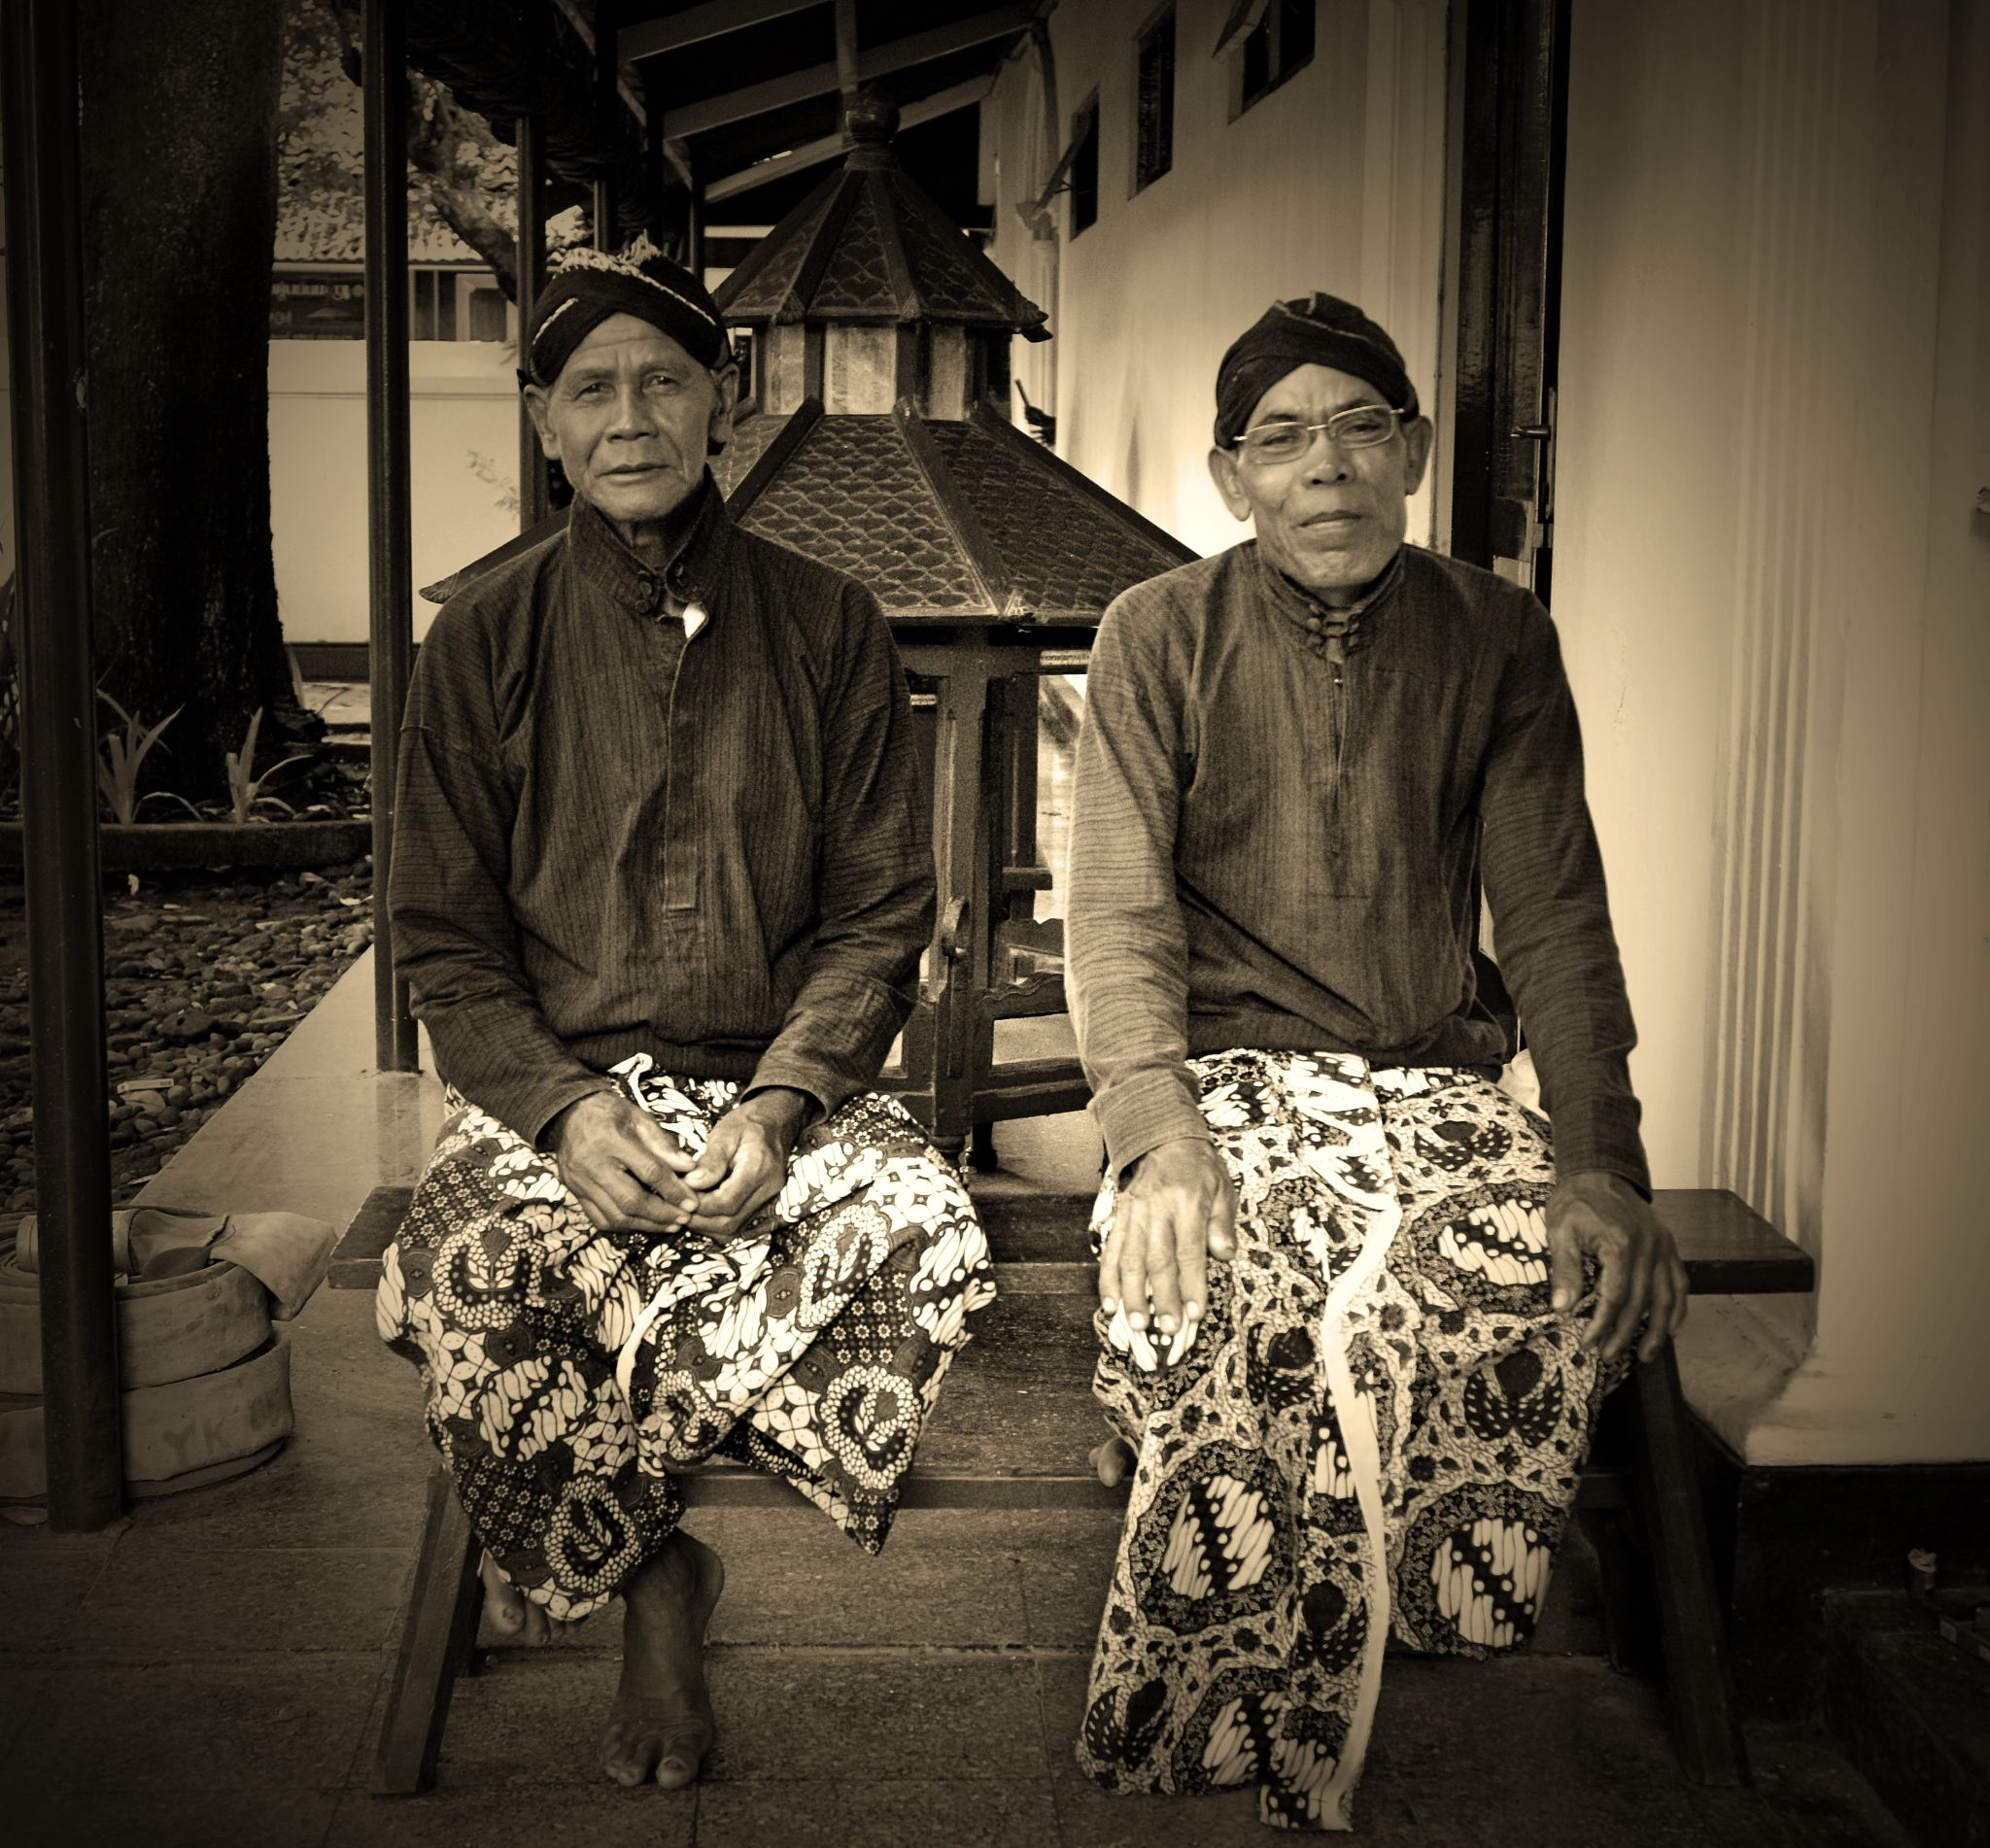 The guards of Sultan palace in Yogyakarta by Herodion Luas